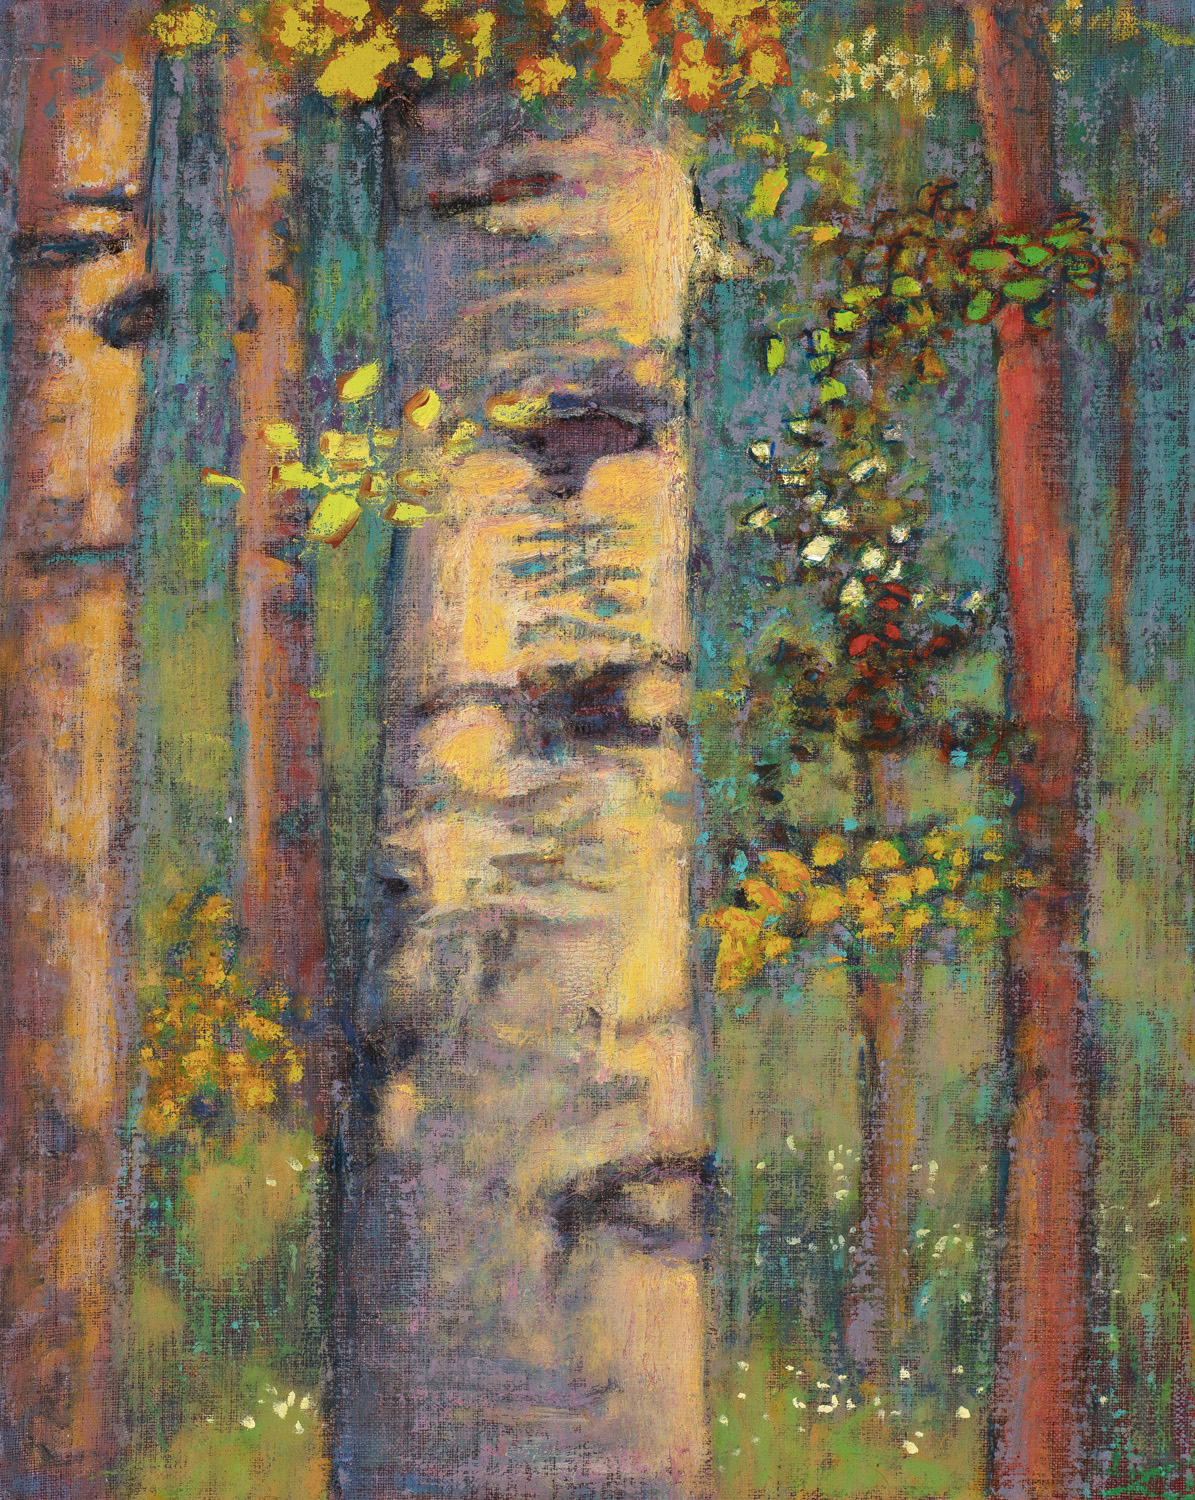 Woodland Grace   | oil on linen | 15 x 12"